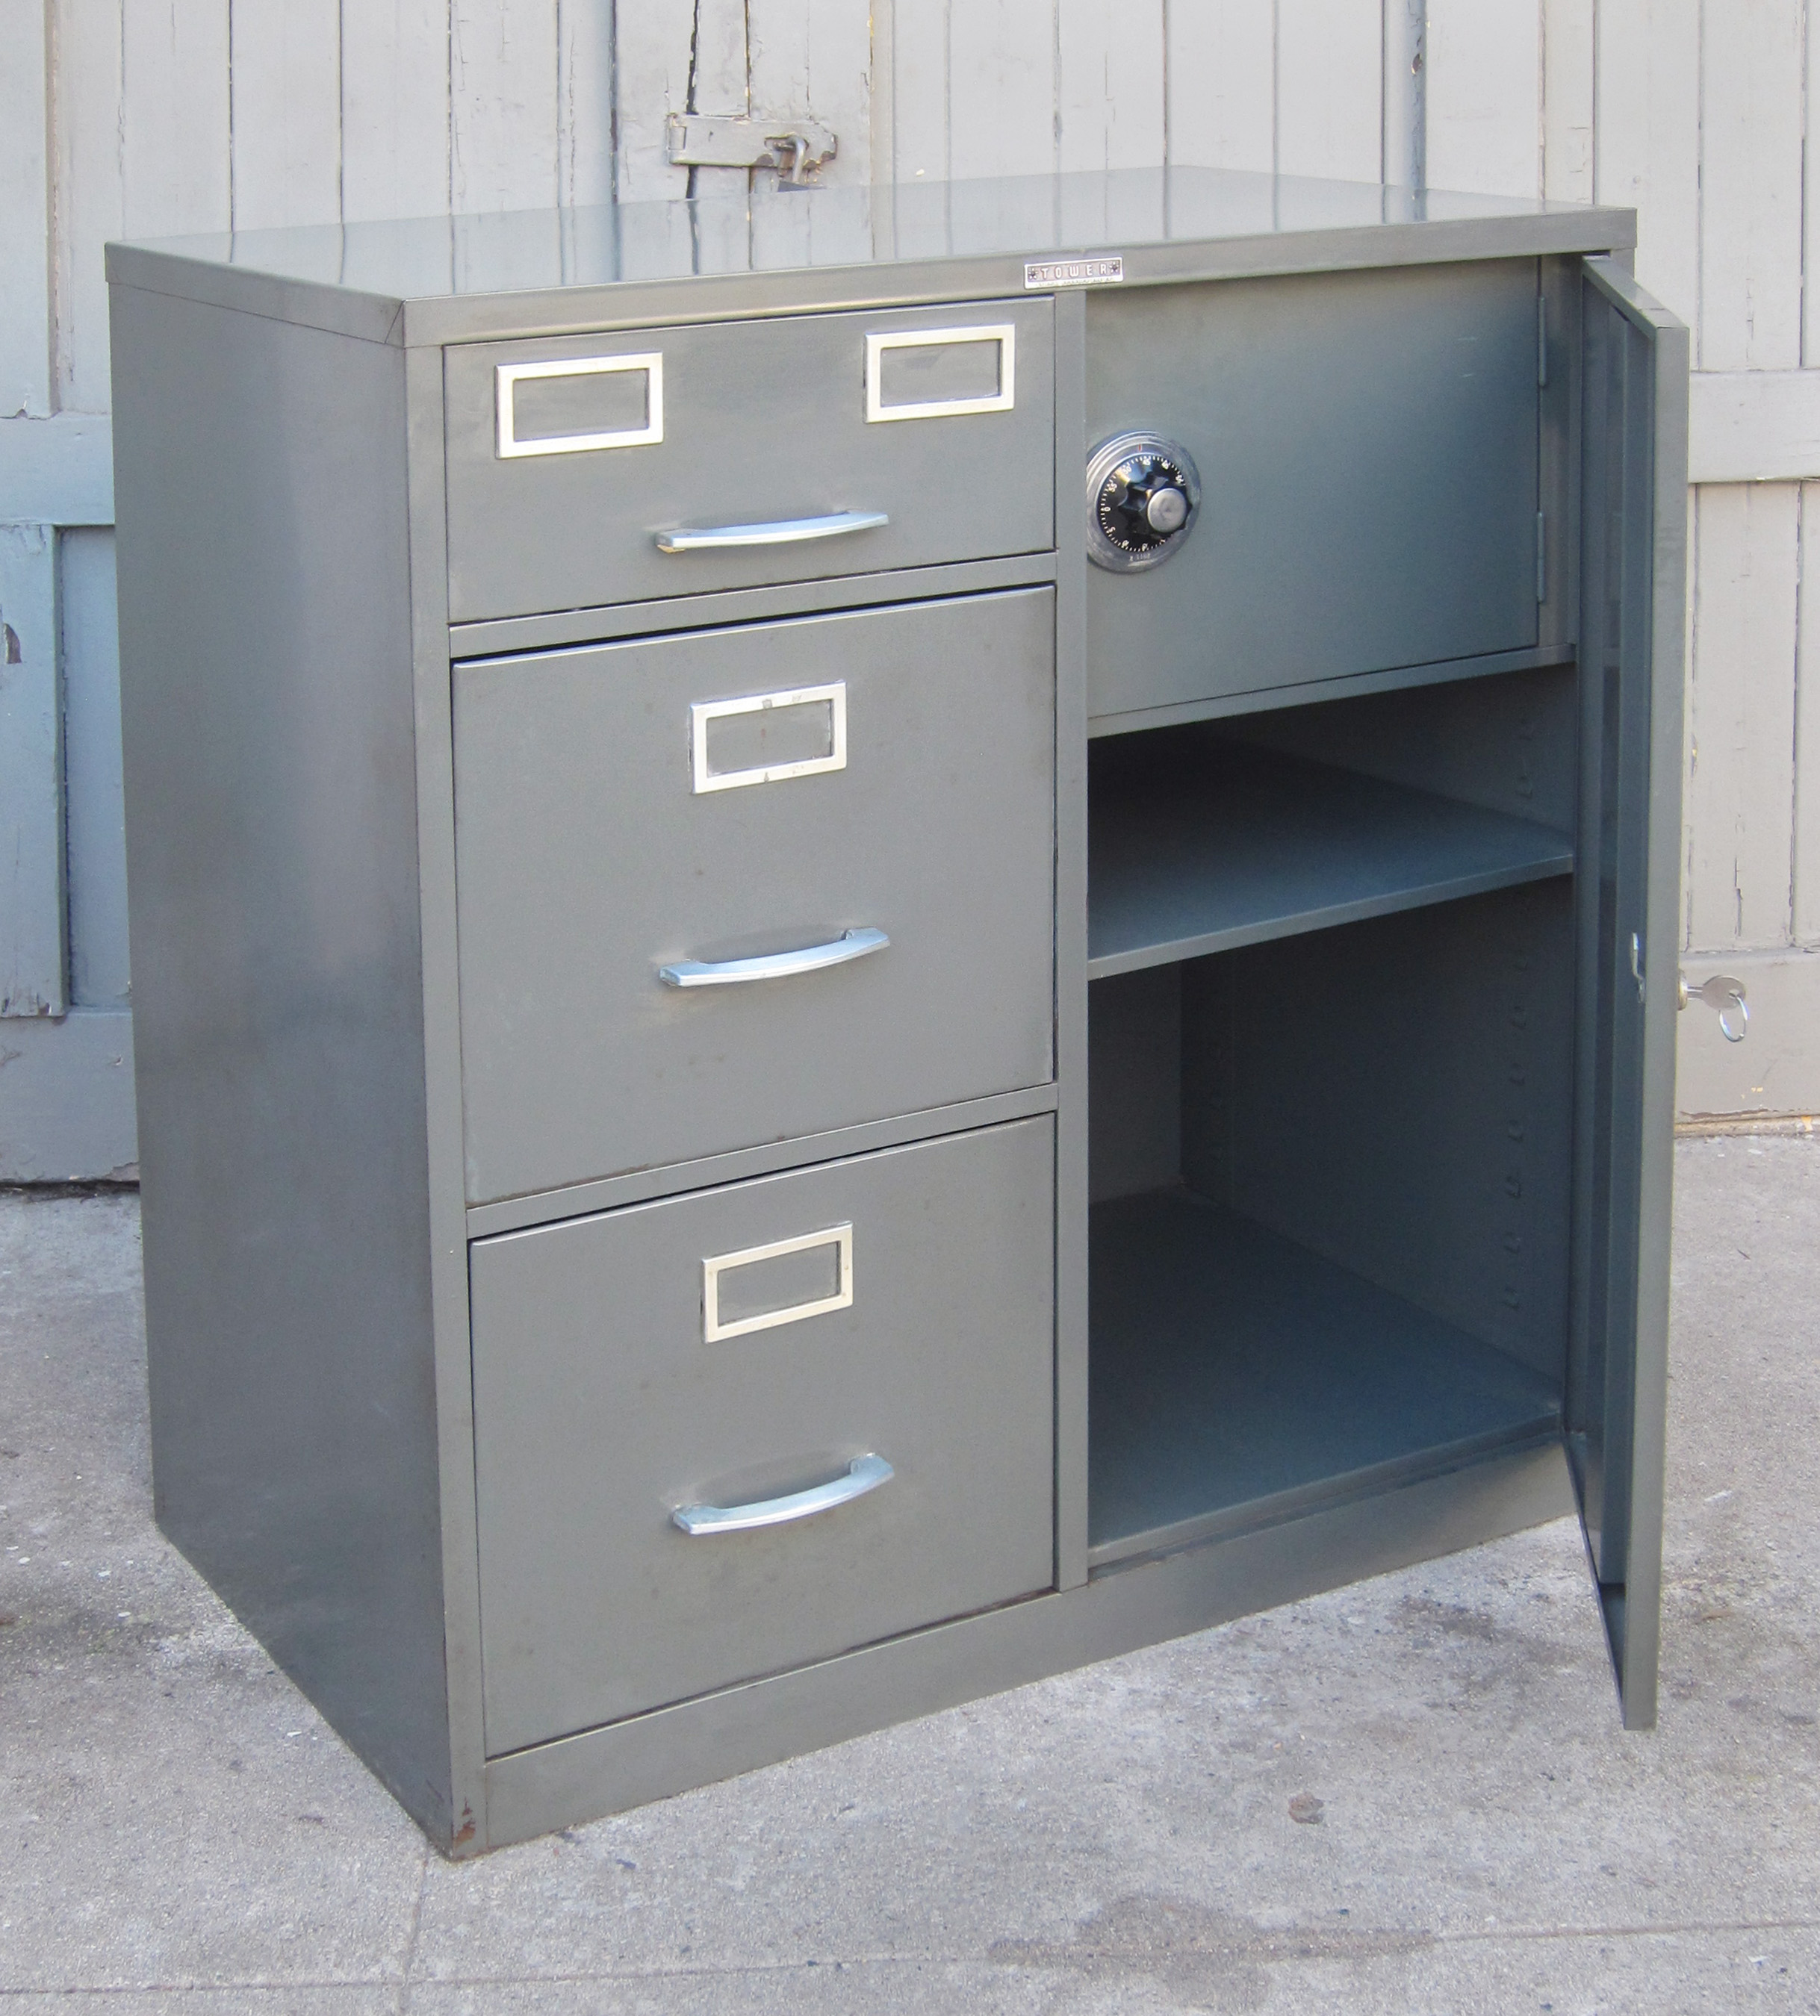 4 drawer safe for document storage